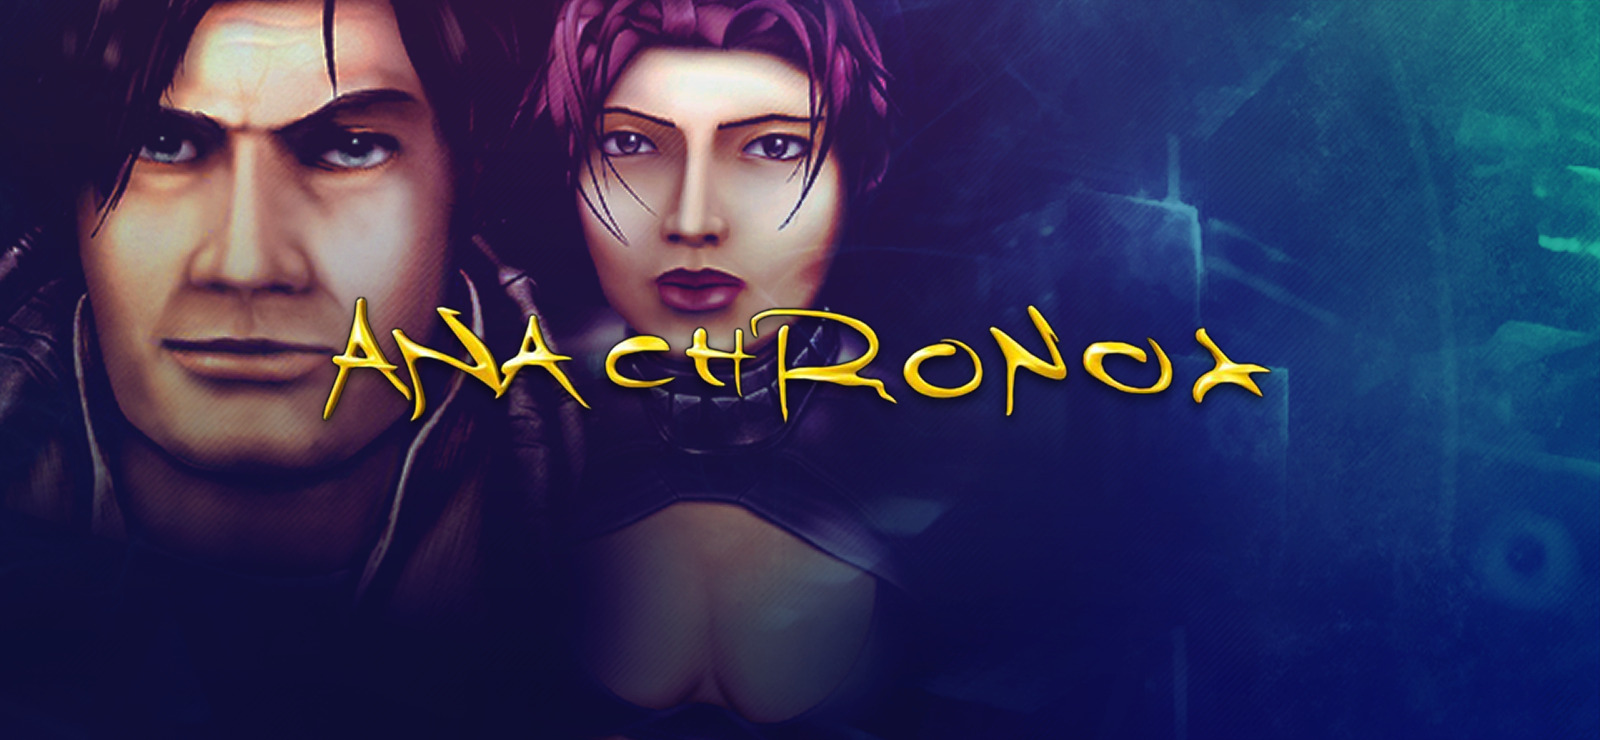 Anachronox RPG games for Pc 2018